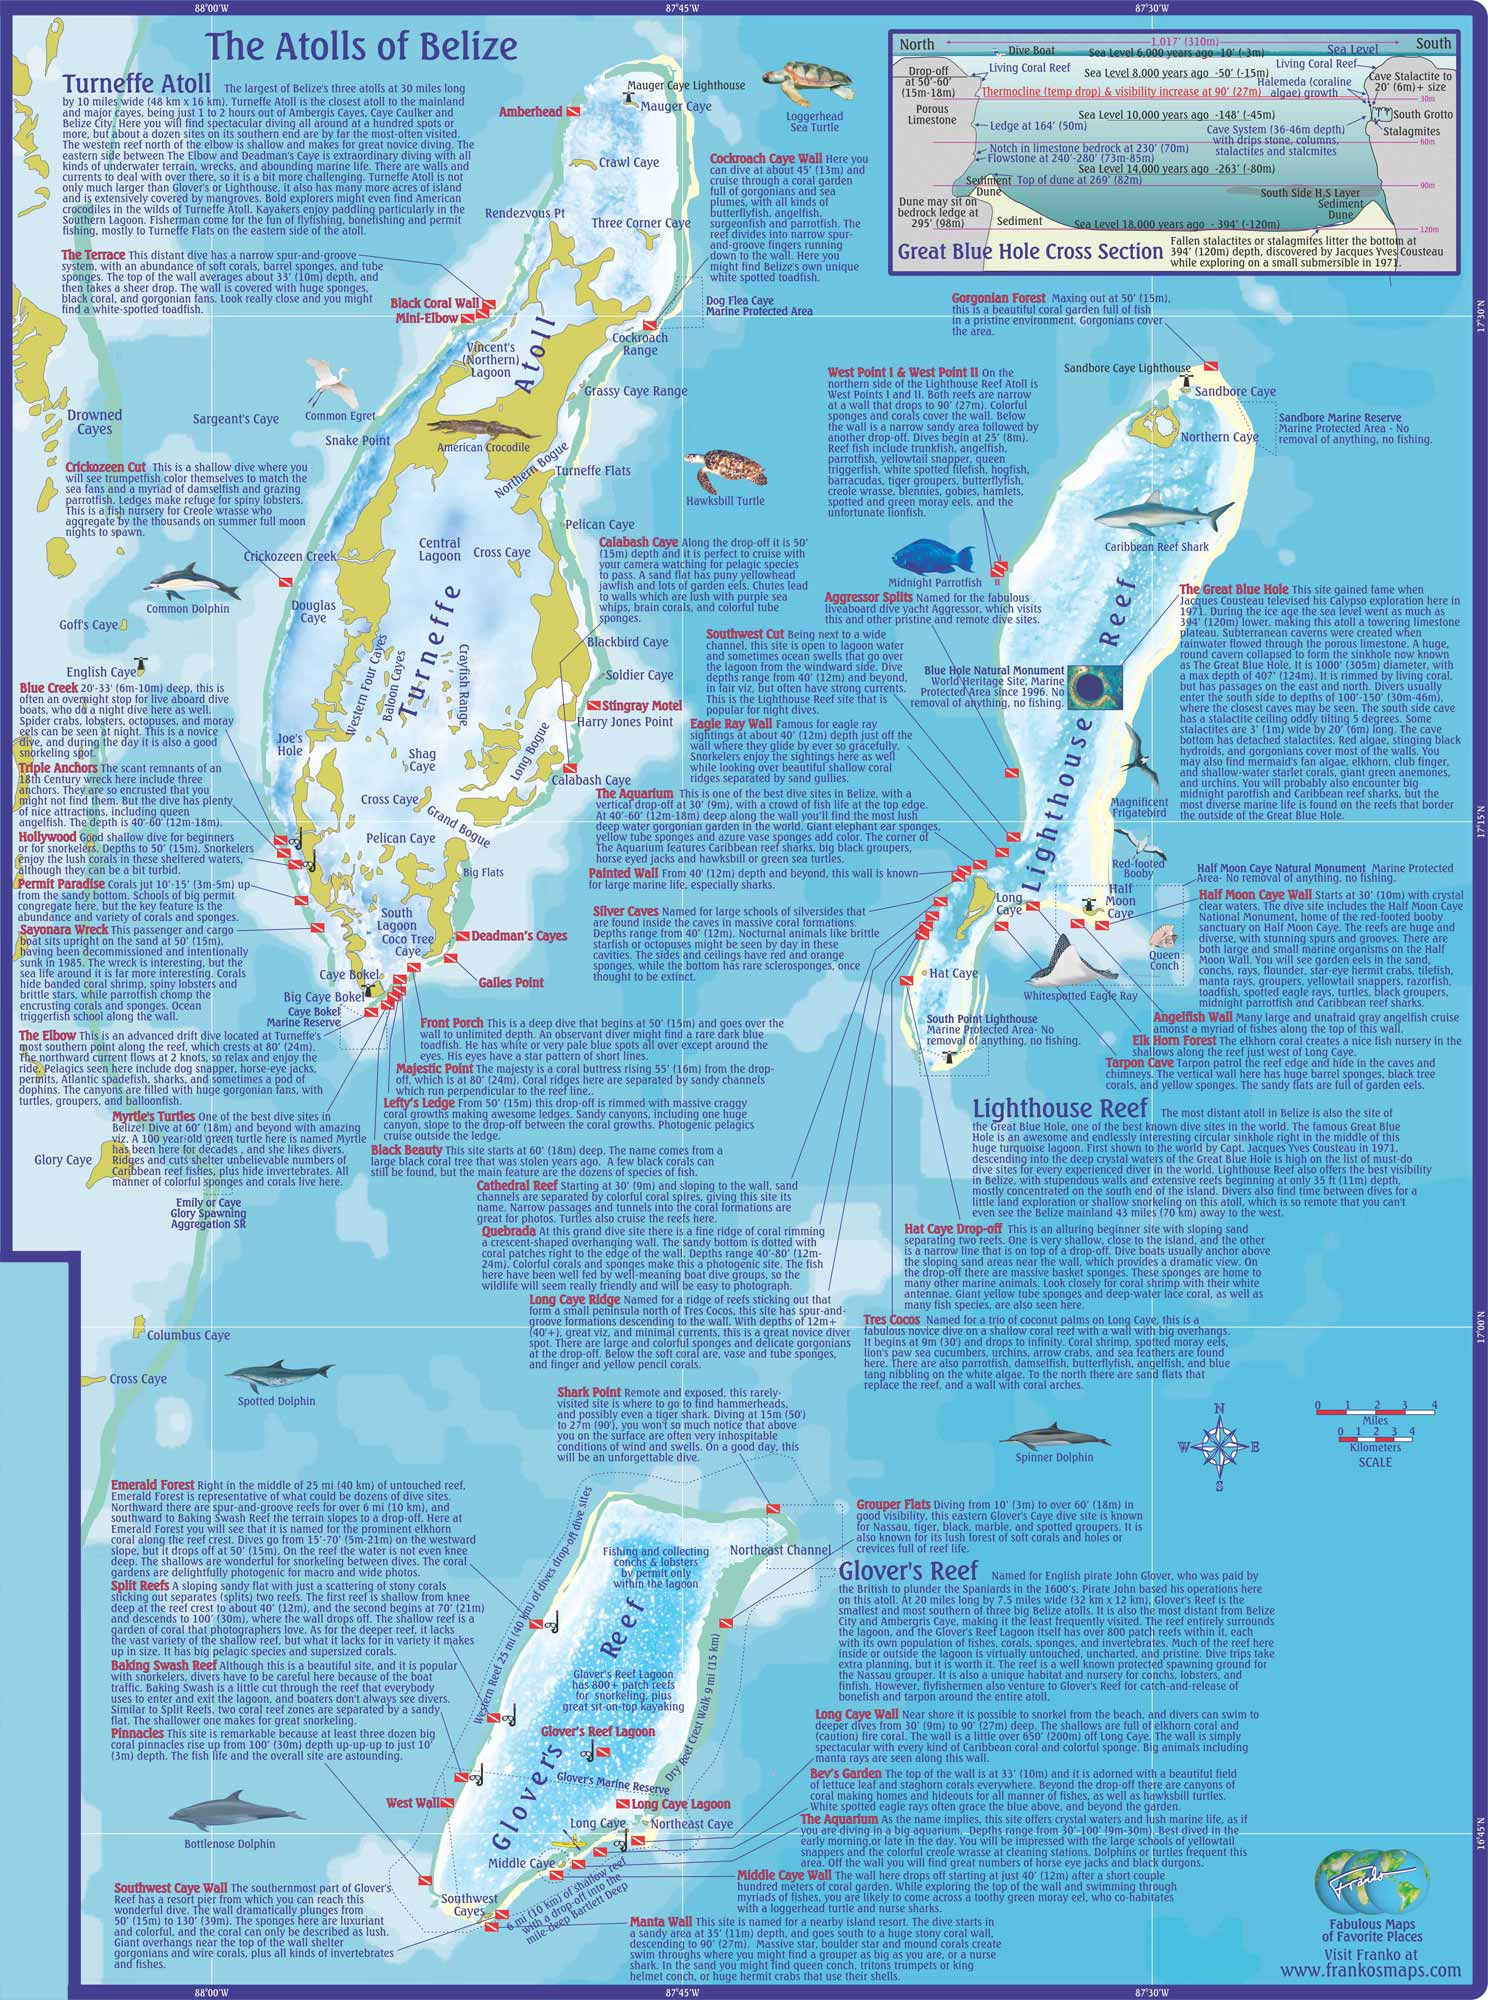 Belize Scuba Diving and Snorkeling on Ambergris Caye Caribbean – Belize Tourist Map